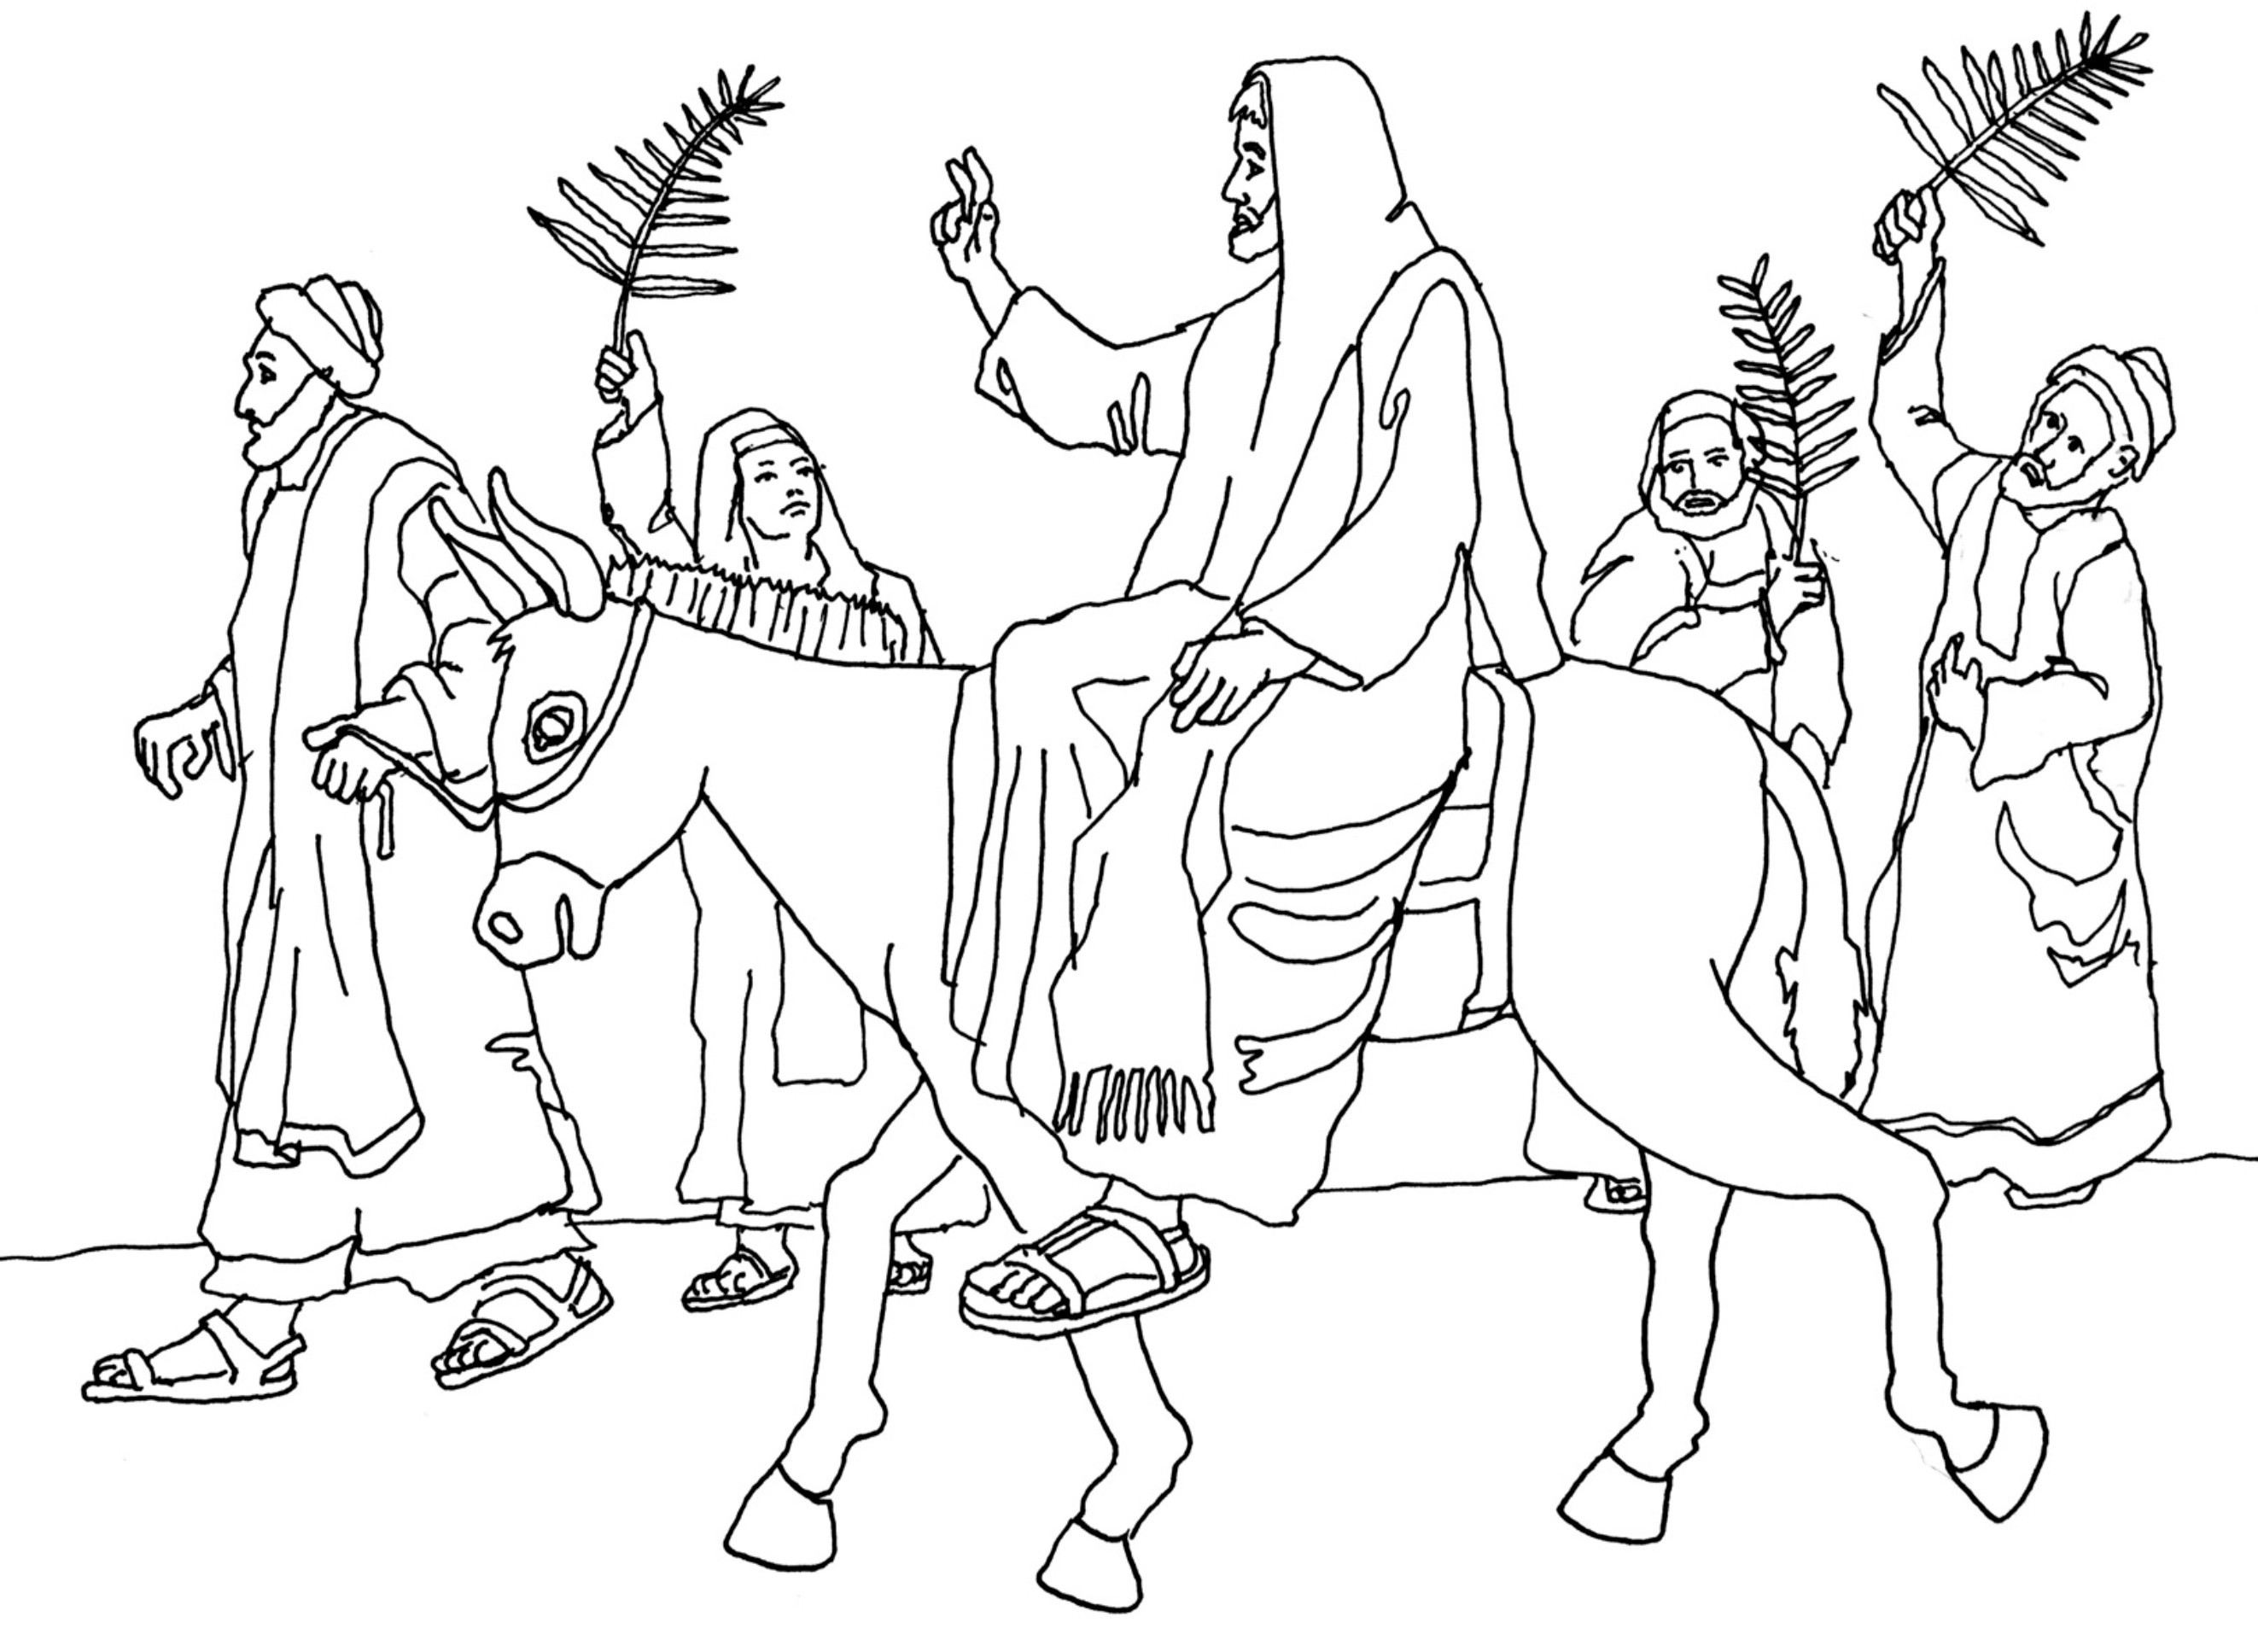 coloring pages palm sunday palm sunday coloring pages getcoloringpagescom palm sunday coloring pages